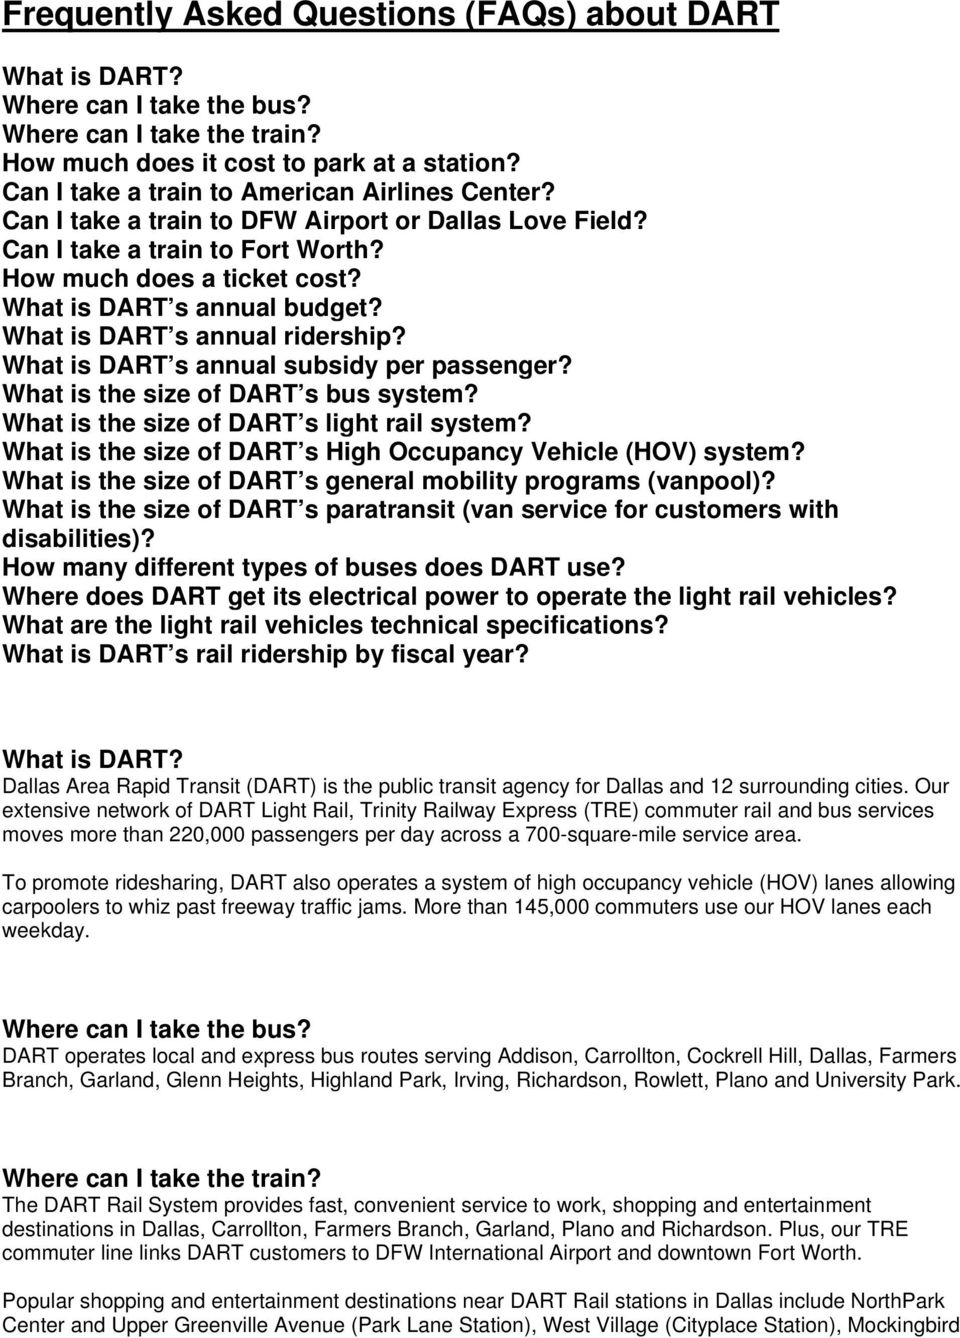 What is DART s annual ridership? What is DART s annual subsidy per passenger? What is the size of DART s bus system? What is the size of DART s light rail system?